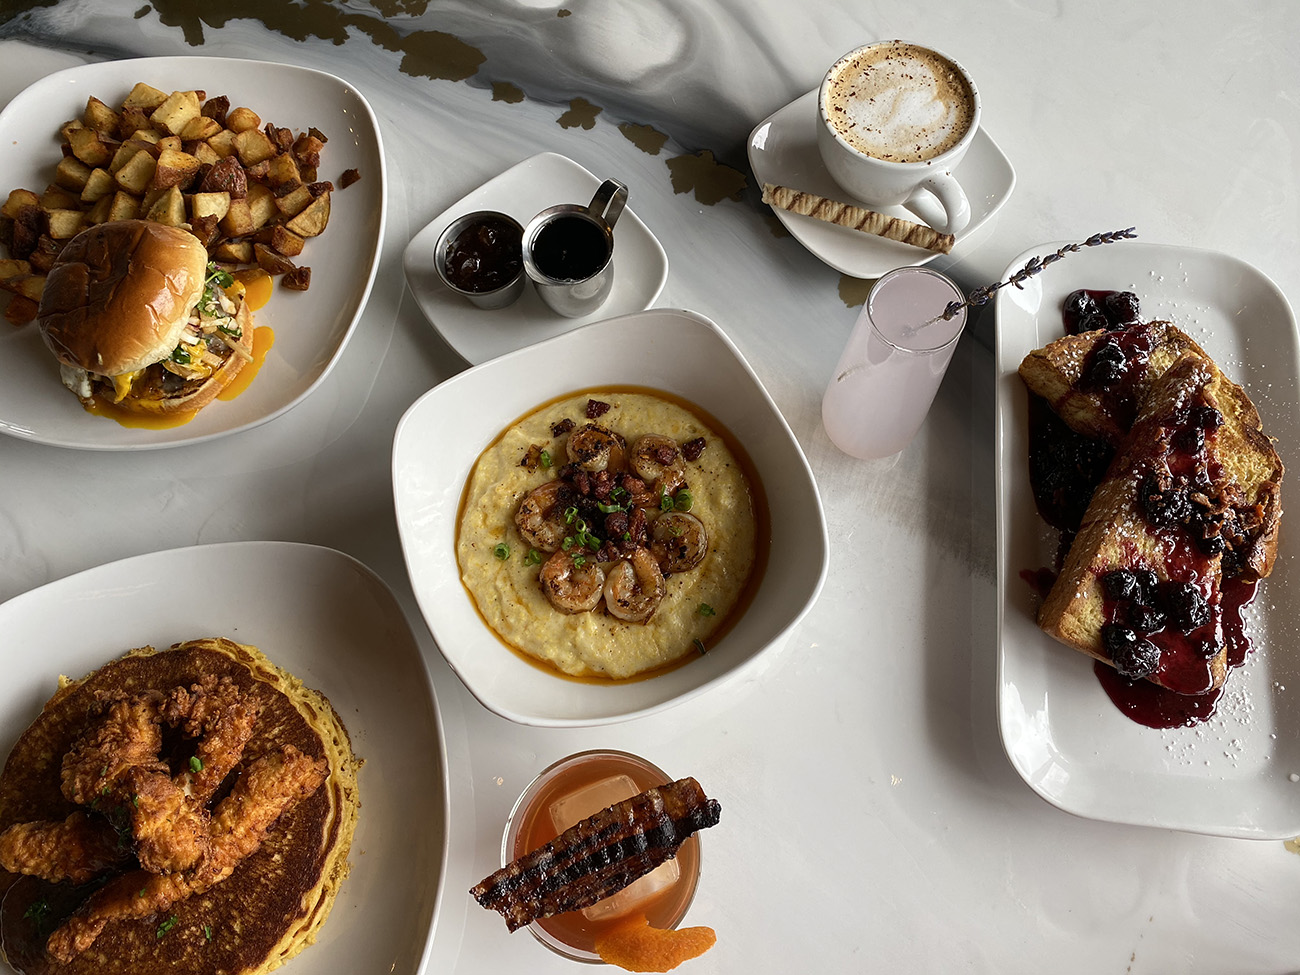 Brunch restaurant Easy Like Sunday opens on February 13 in the Park Road area